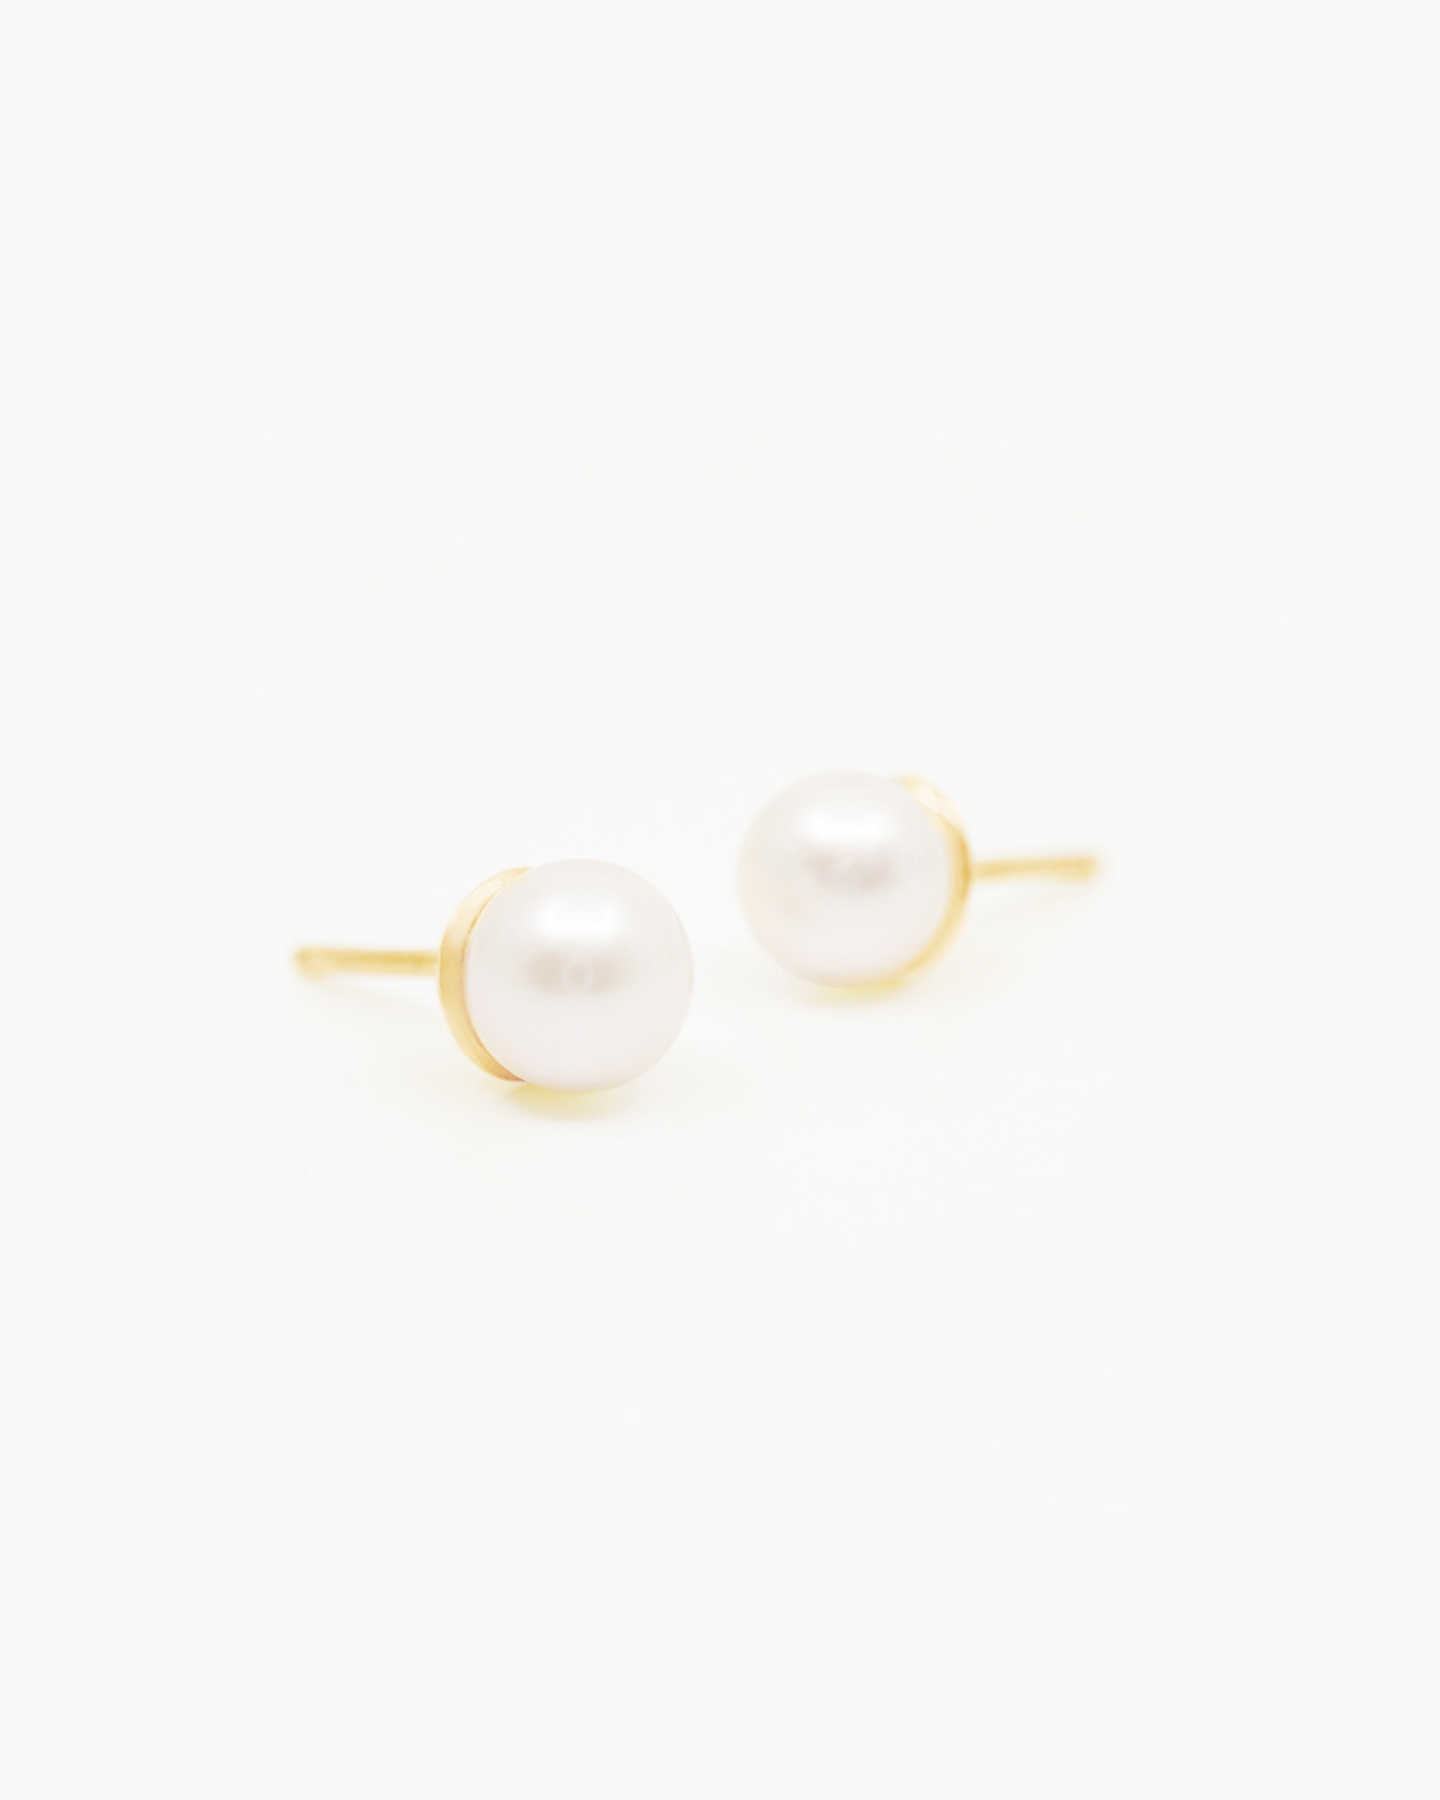 Freshwater Cultured Pearl Stud Earrings - Yellow Gold - 0